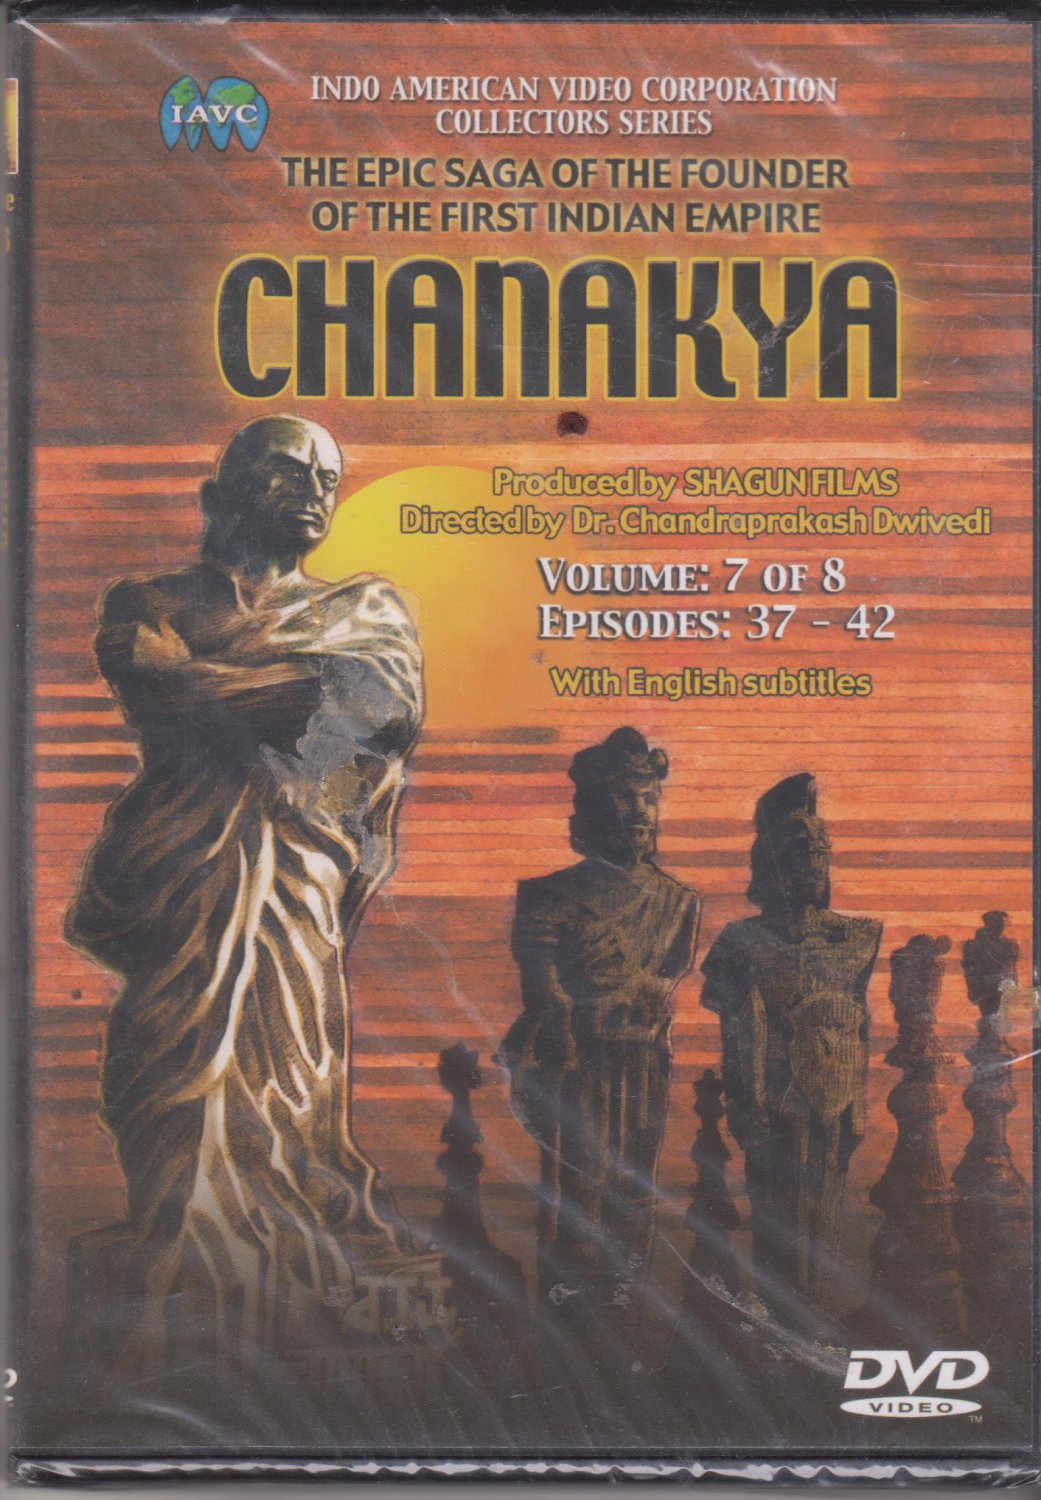 Chanakya Vol 5 - Episodes 25 to 30  [Dvd]  1st edition Released